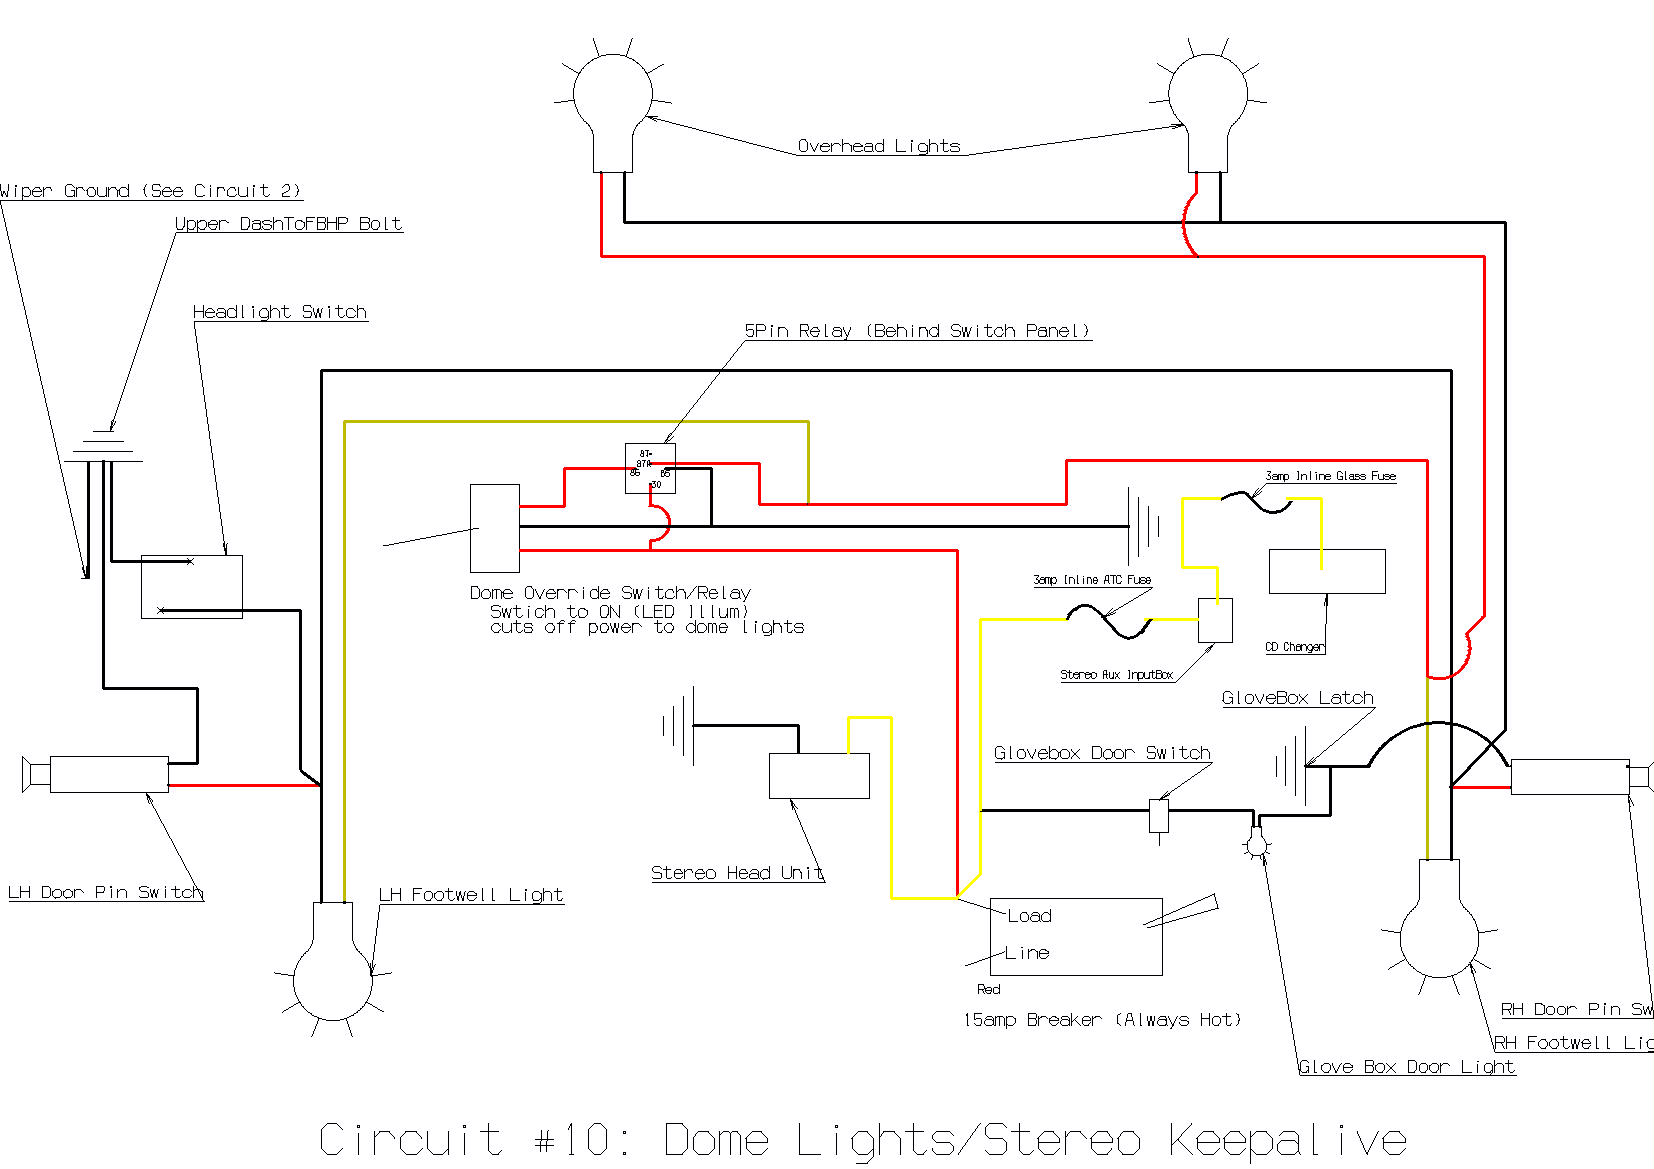 hight resolution of dome light schematic volvo wiring diagramdome light wire diagram wiring diagram datasourcedome light schematic volvo wiring